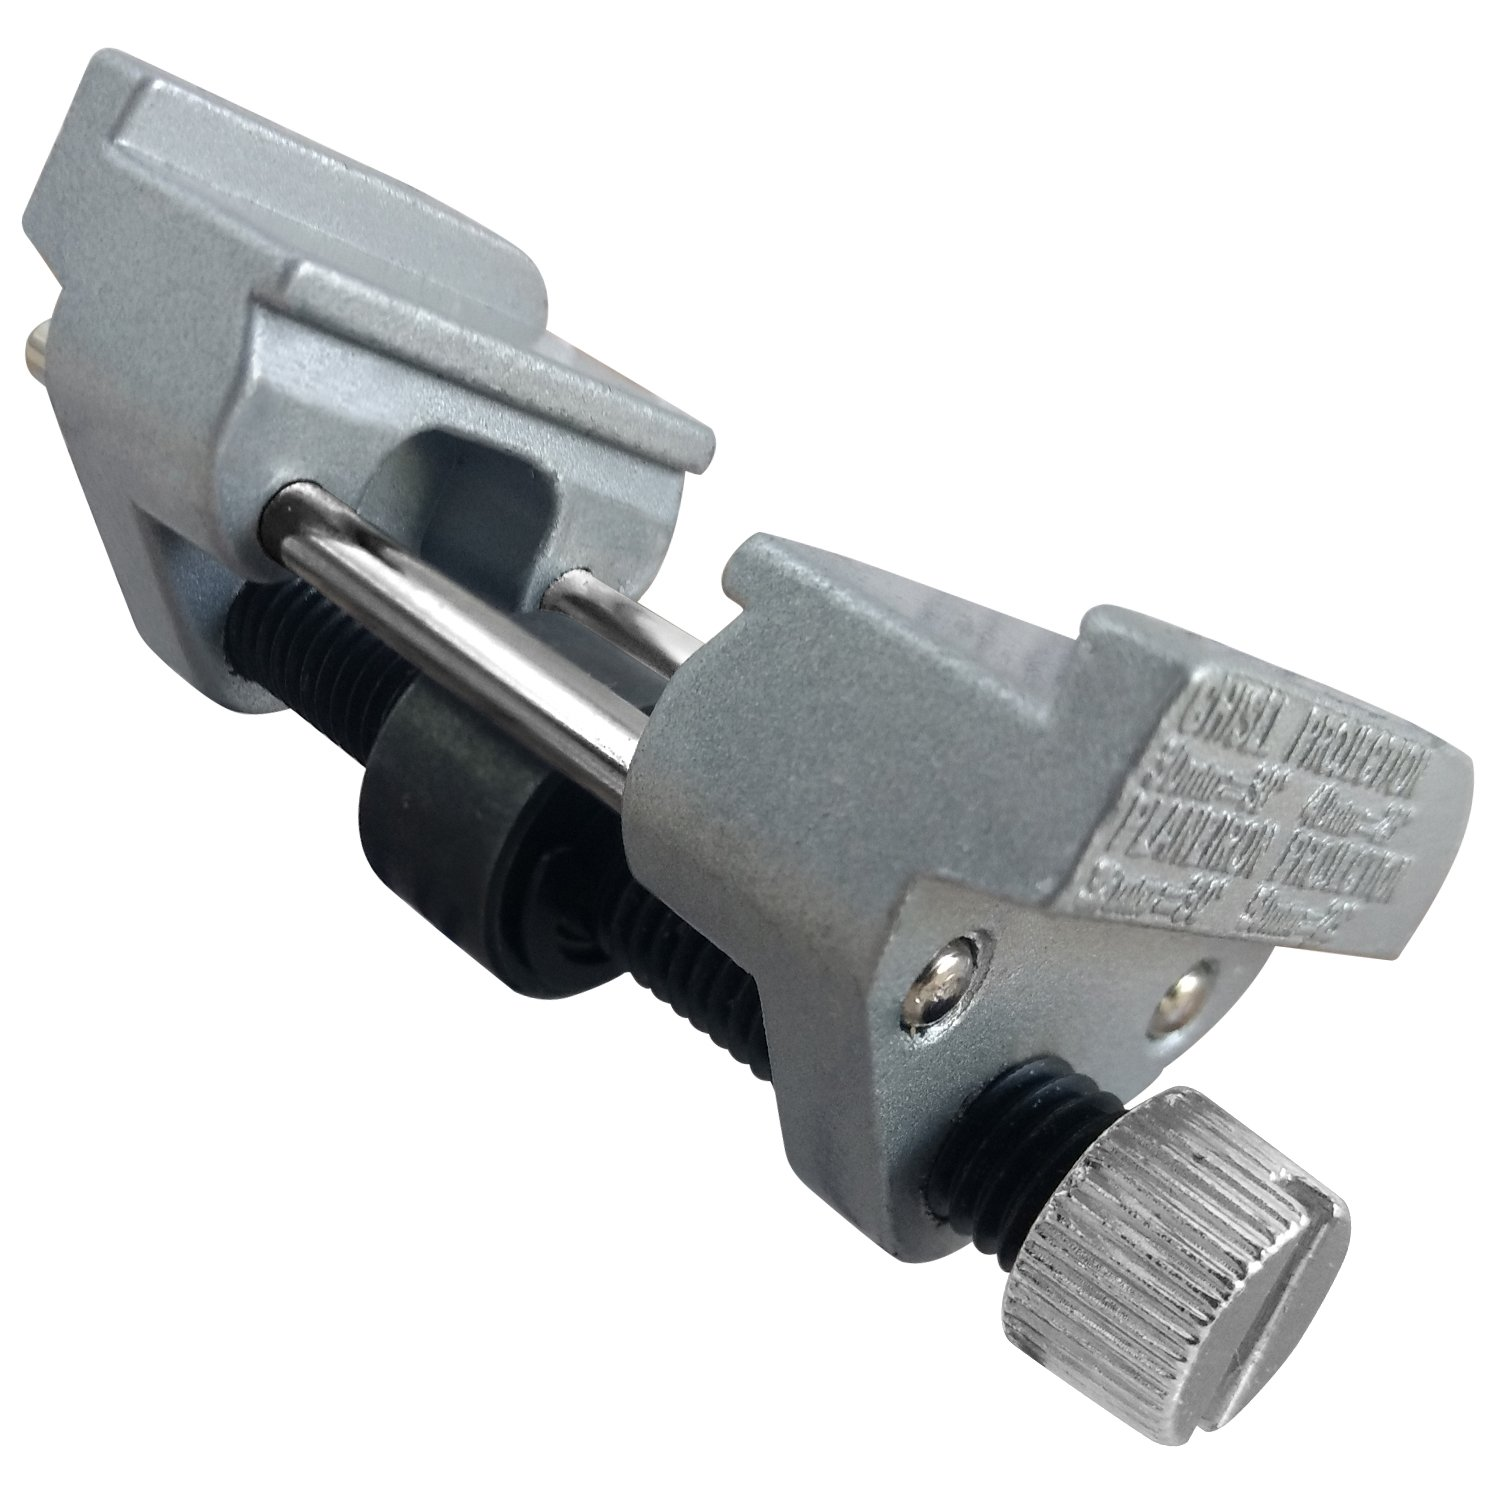 "ATLIN Honing Guide - Fits Chisels 1/8"" to 1-7/8"", Fits Planer Blades 1-3/8"" to 3-1/8"""